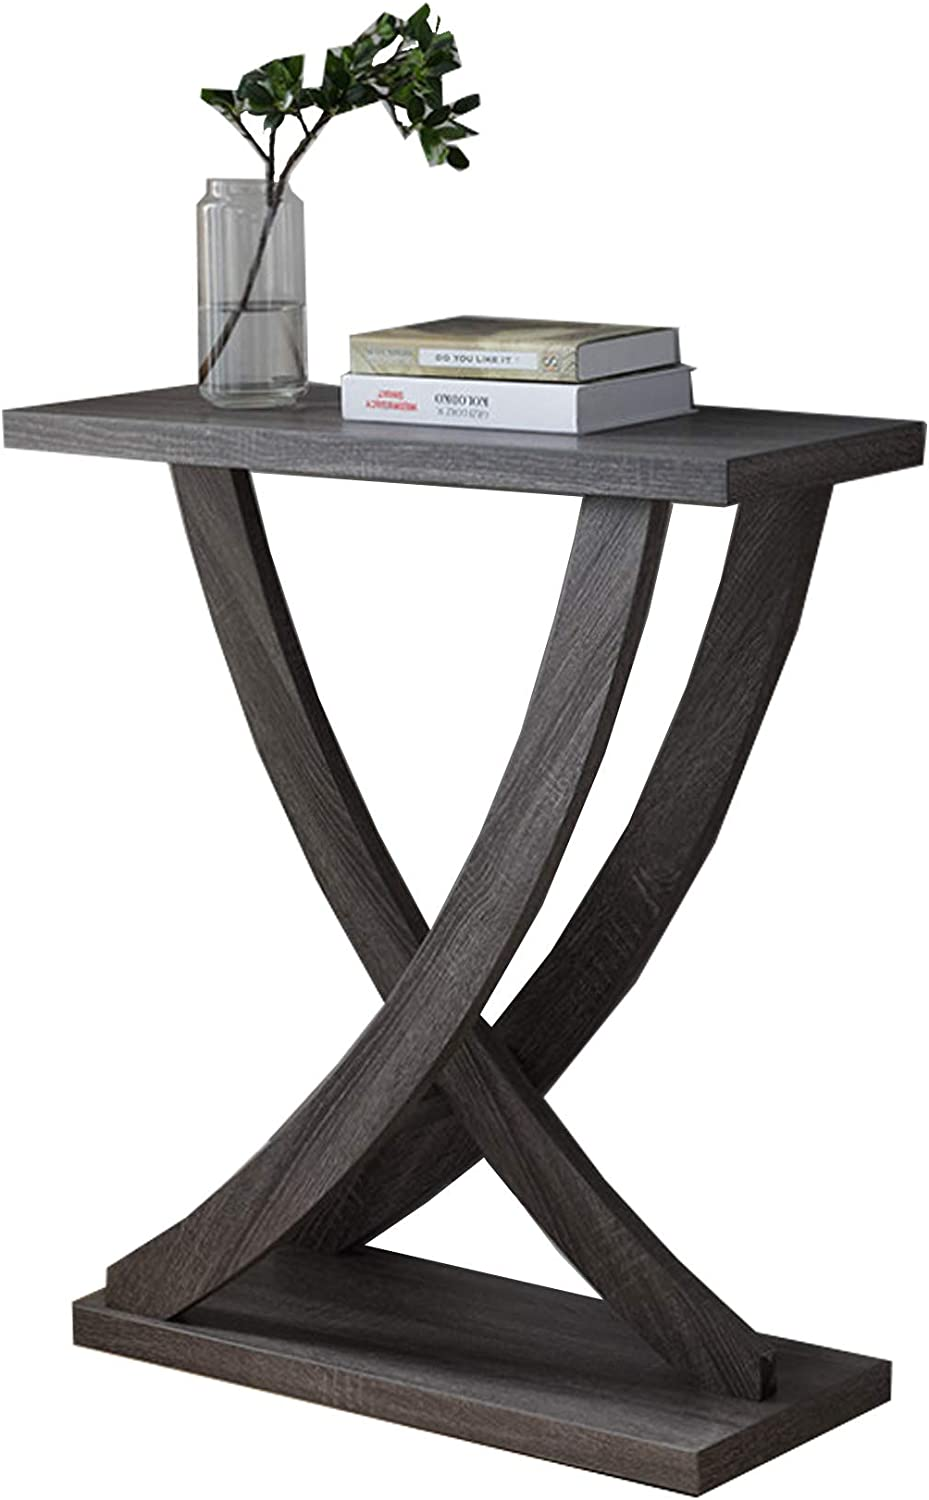 Benzara Wooden Console Sofa Side End Table with Curved Legs, Distressed Gray: Kitchen & Dining